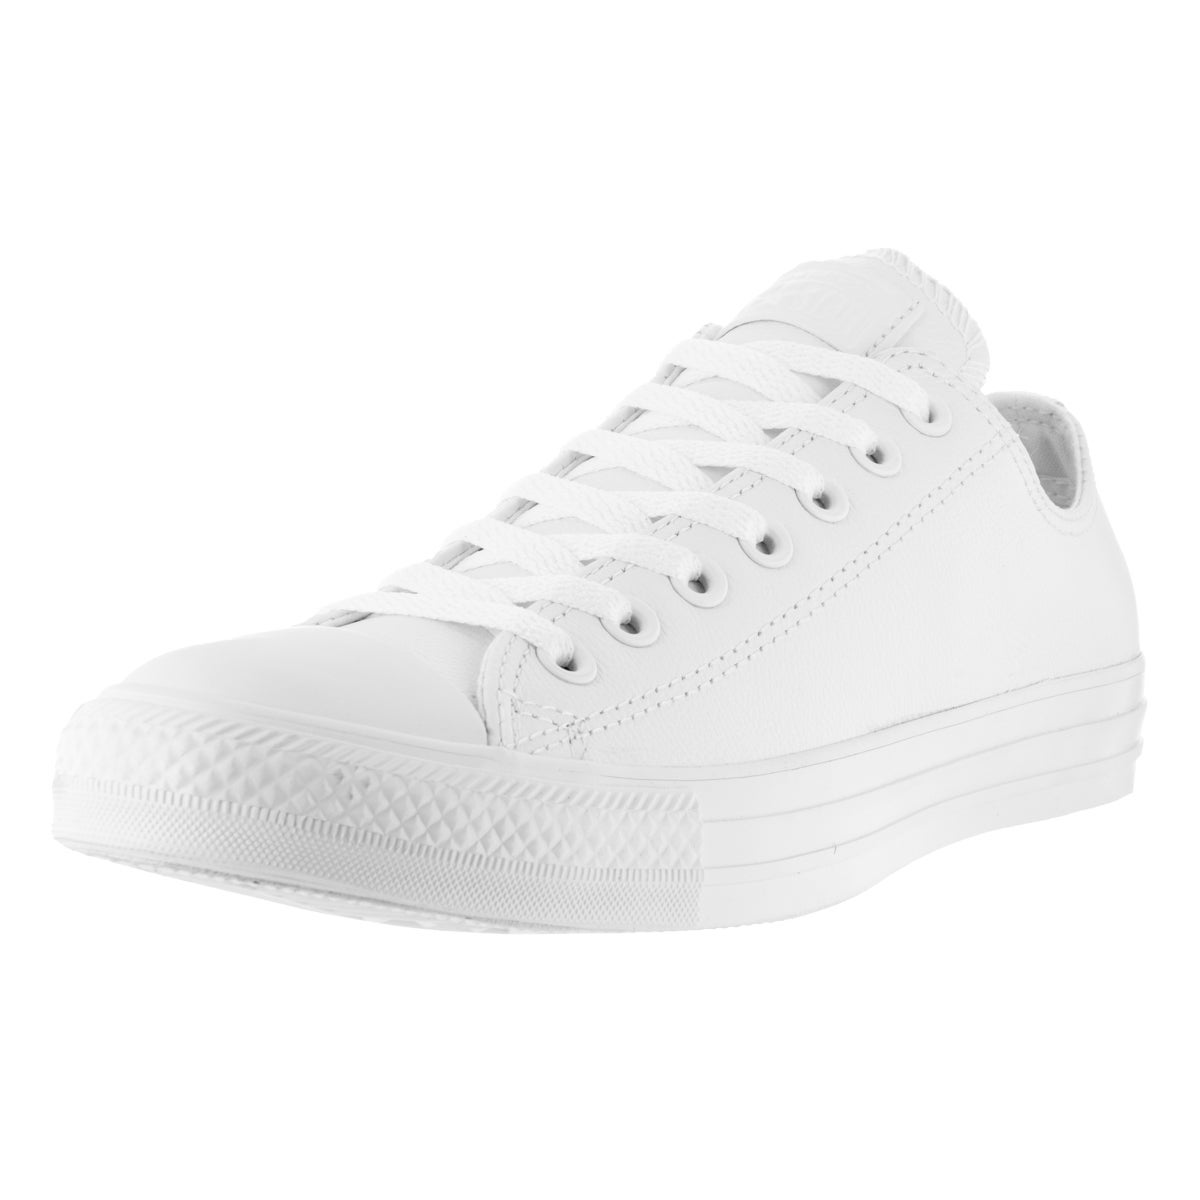 bd2d4d625955 Converse Unisex Chuck Taylor All Star Ox Basketball Shoe - Free ...